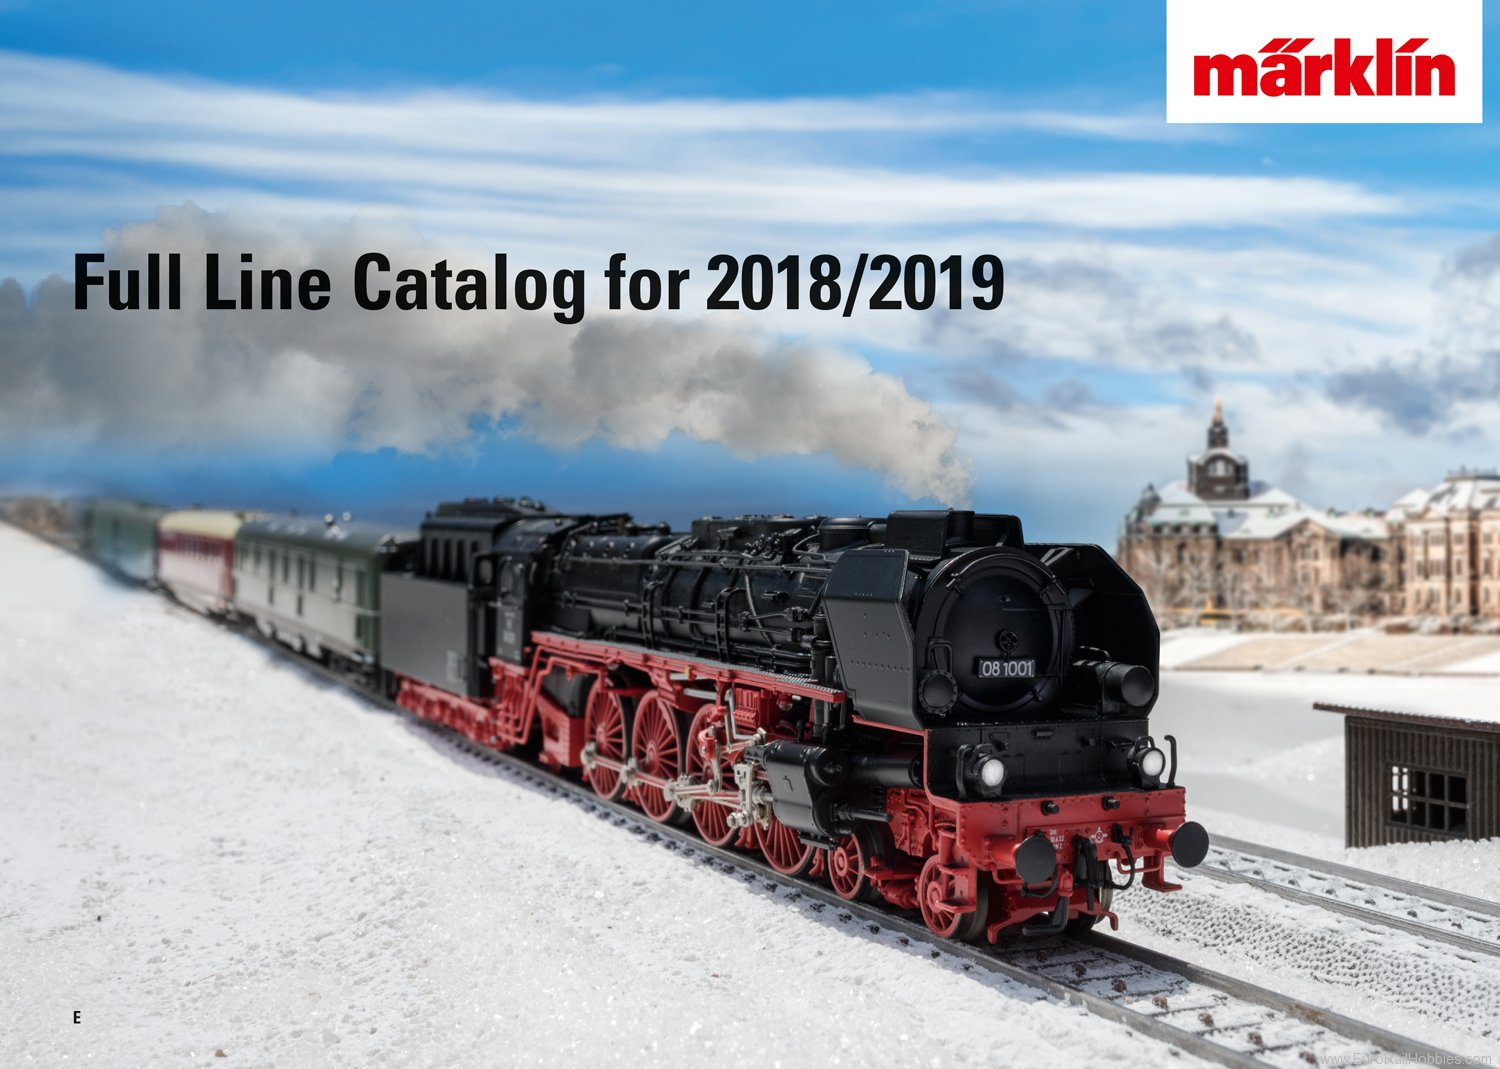 Marklin 15762 Marklin Full Line Catalog 2018/2019 ENGLISH E